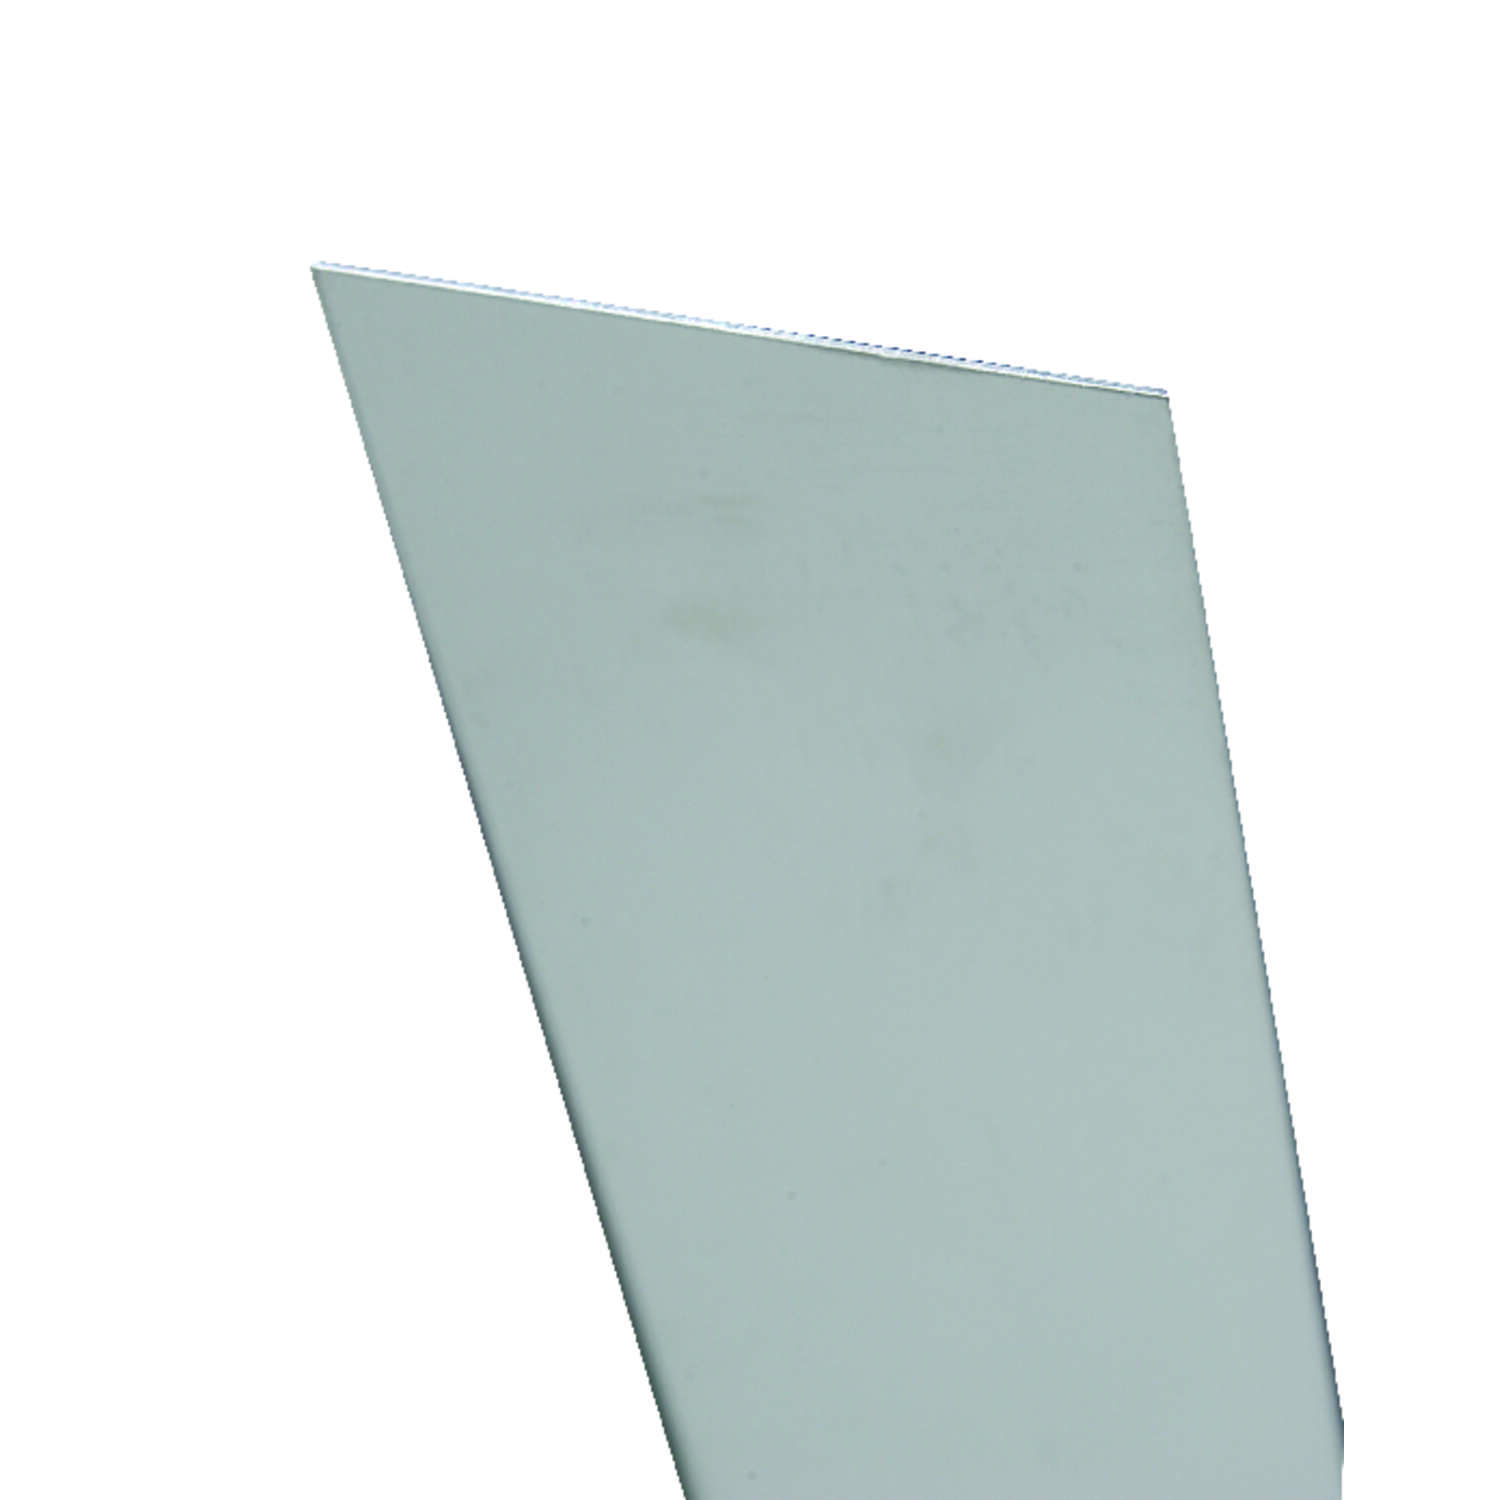 K&S  0.125 in.  x 6 in. W x 12 in. L Aluminum  Sheet Metal